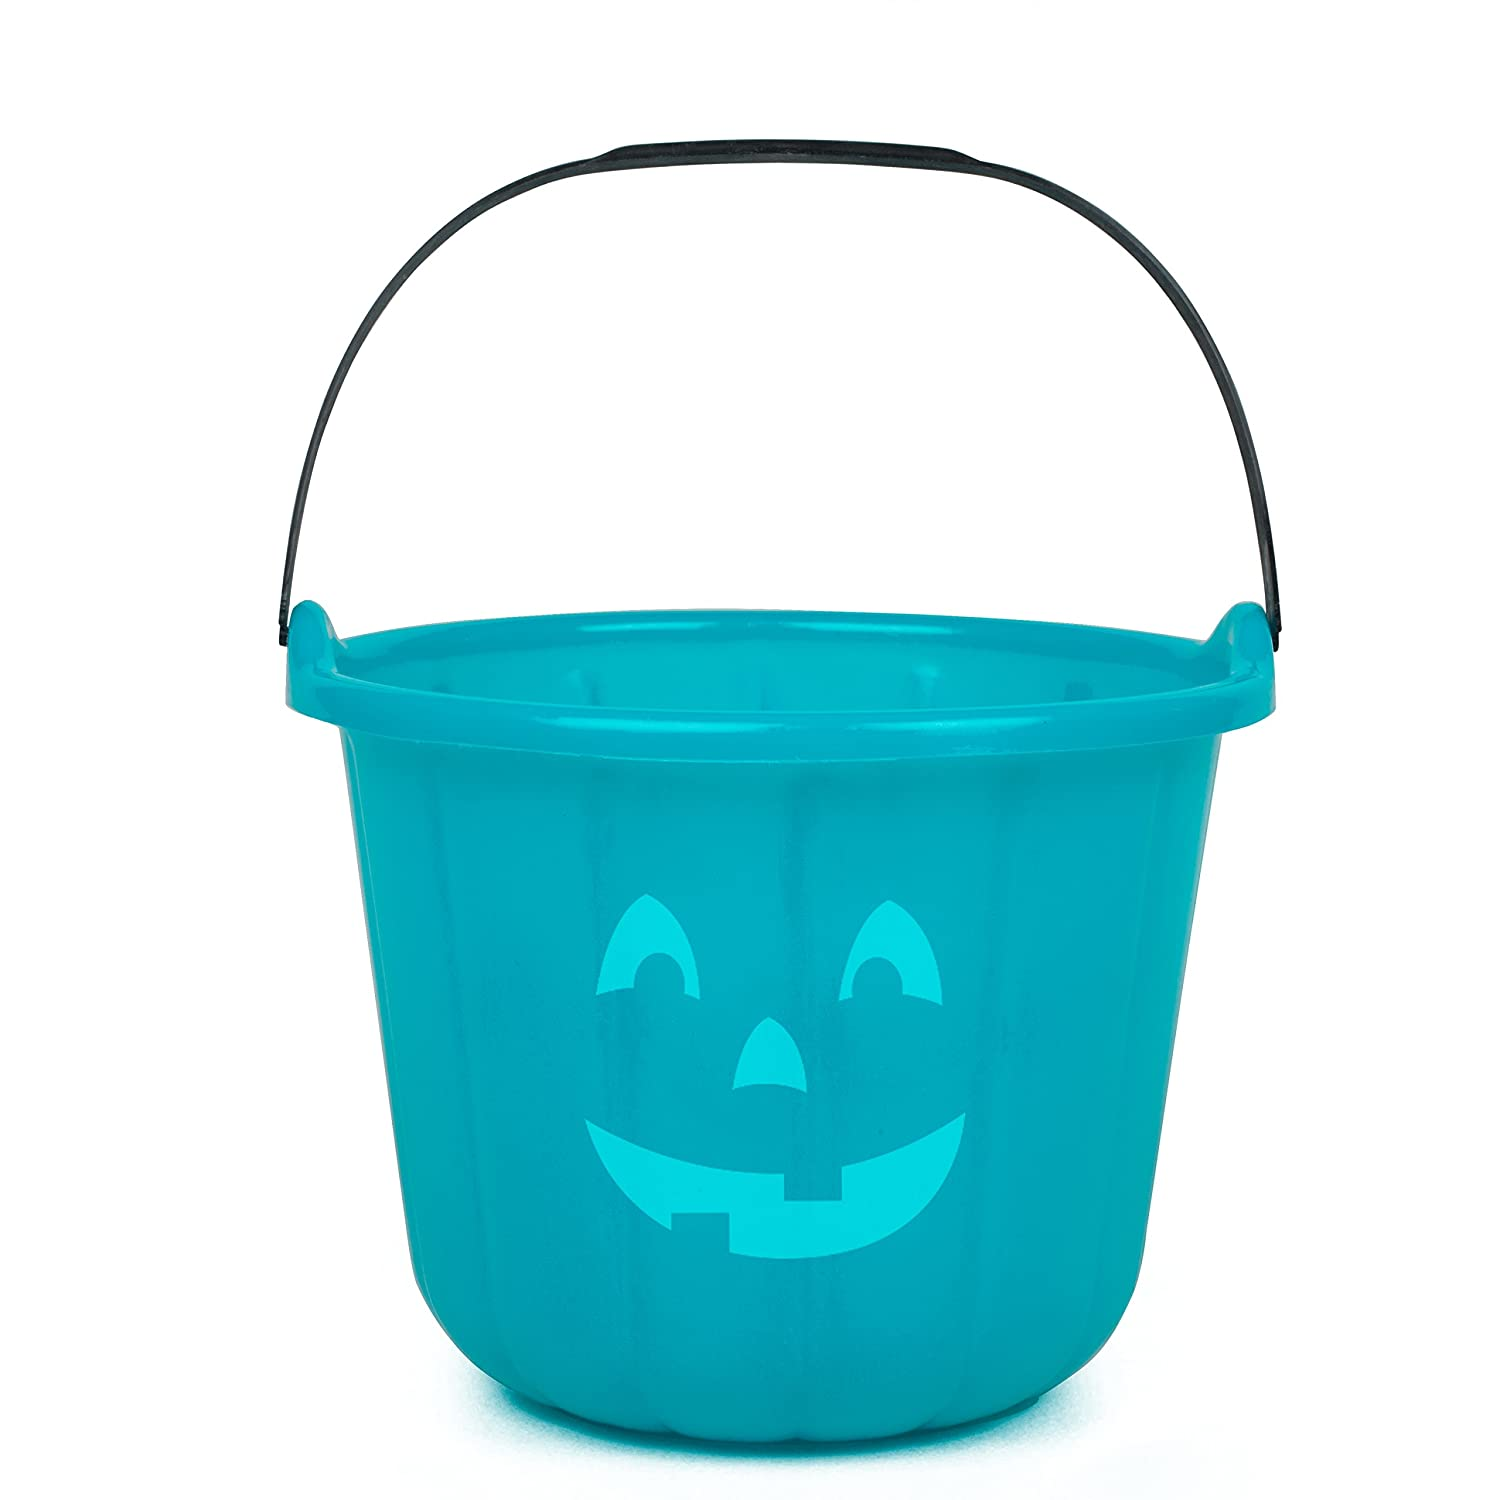 Teal Pumpkin Project Halloween Trick or Treat Bucket - All Sales Supports F.A.R.E.